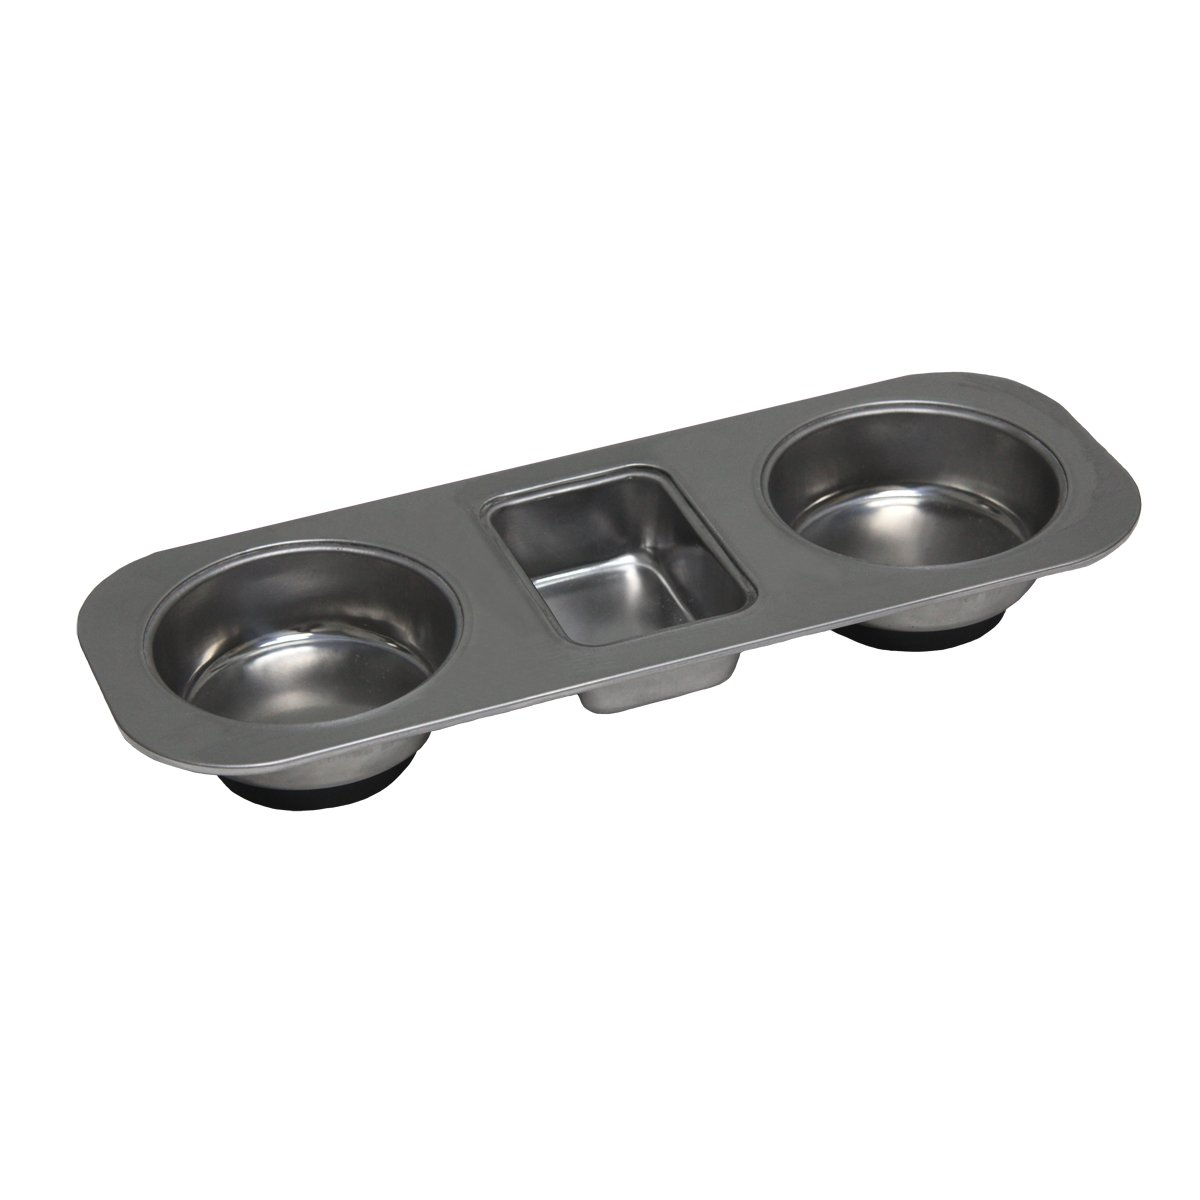 GRIP 67475 Stainless Steel Magnetic Organizer Tray